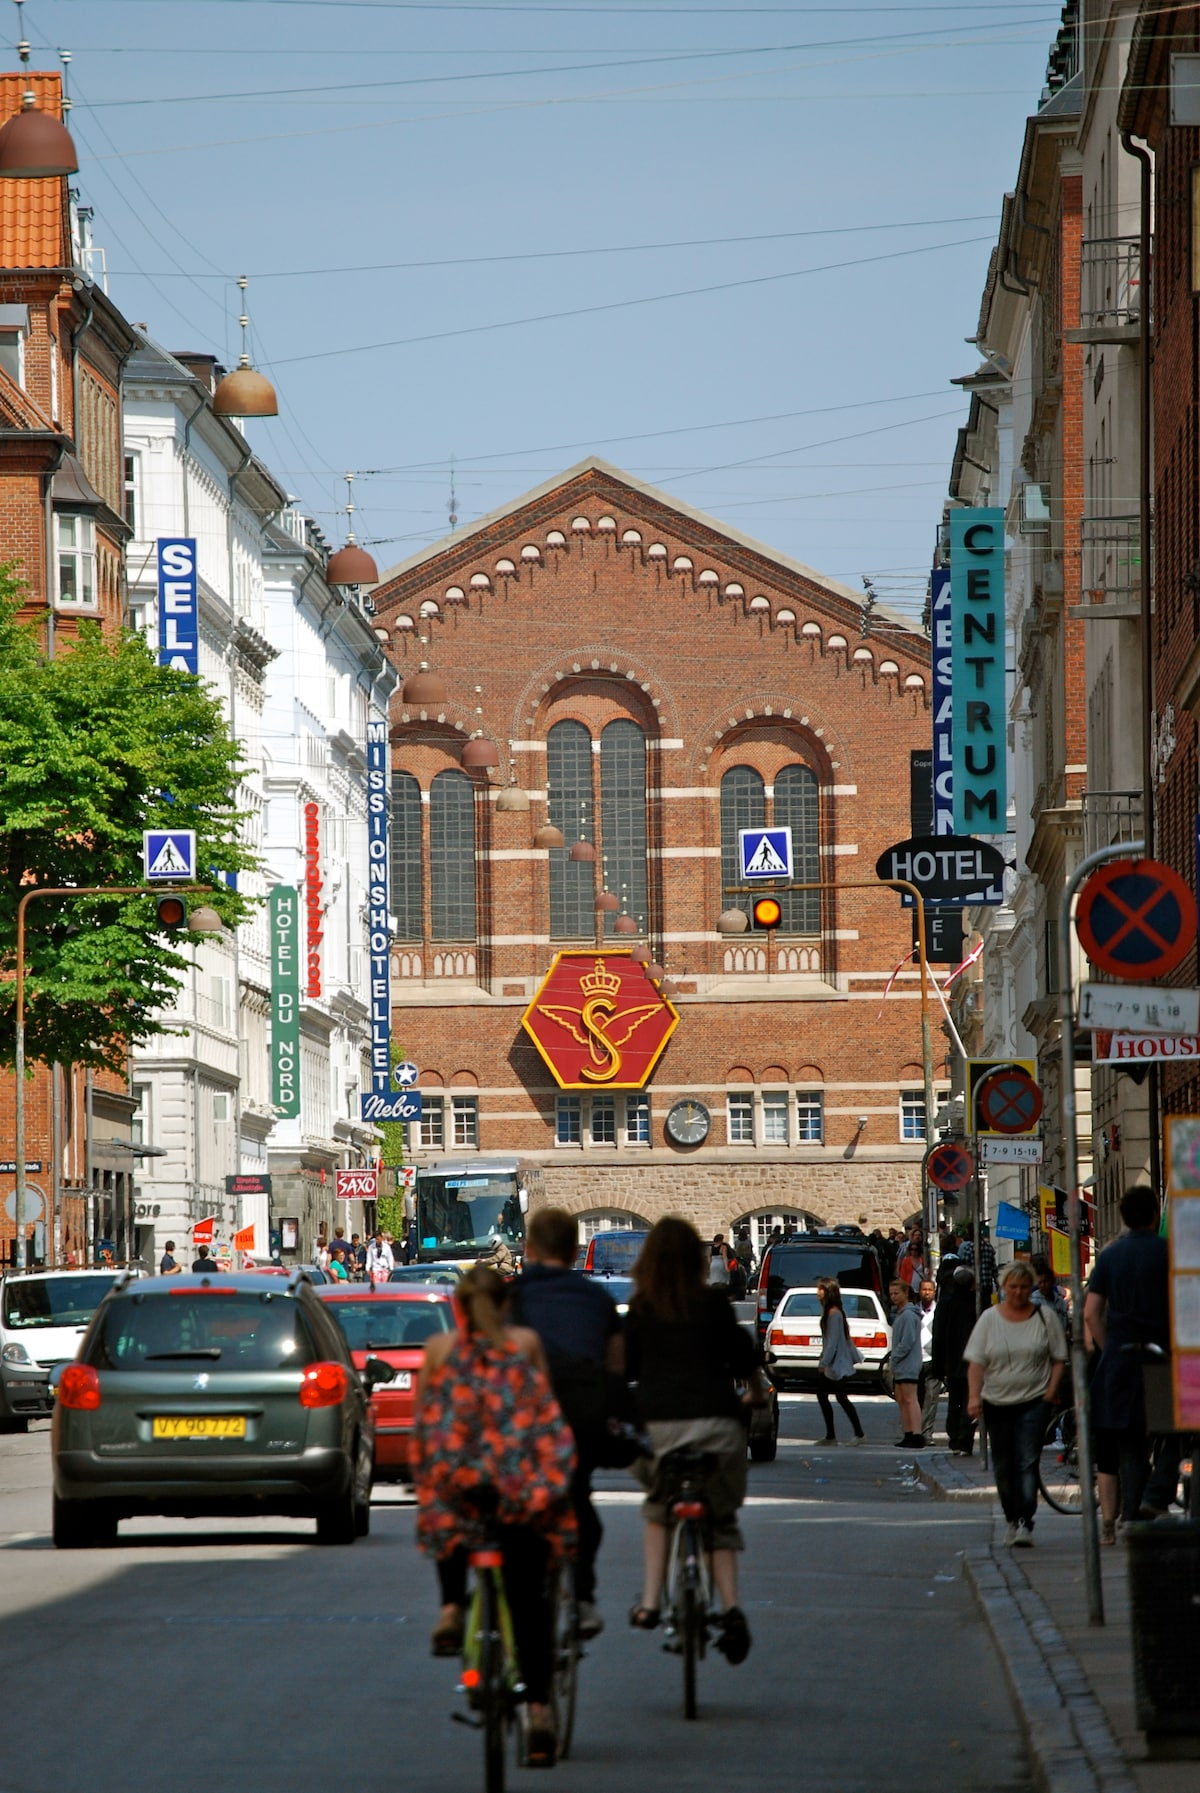 Copenhagen Central Station is very close by - 500 meters - charming and vibrant neighborhood of Vesterbro :-)